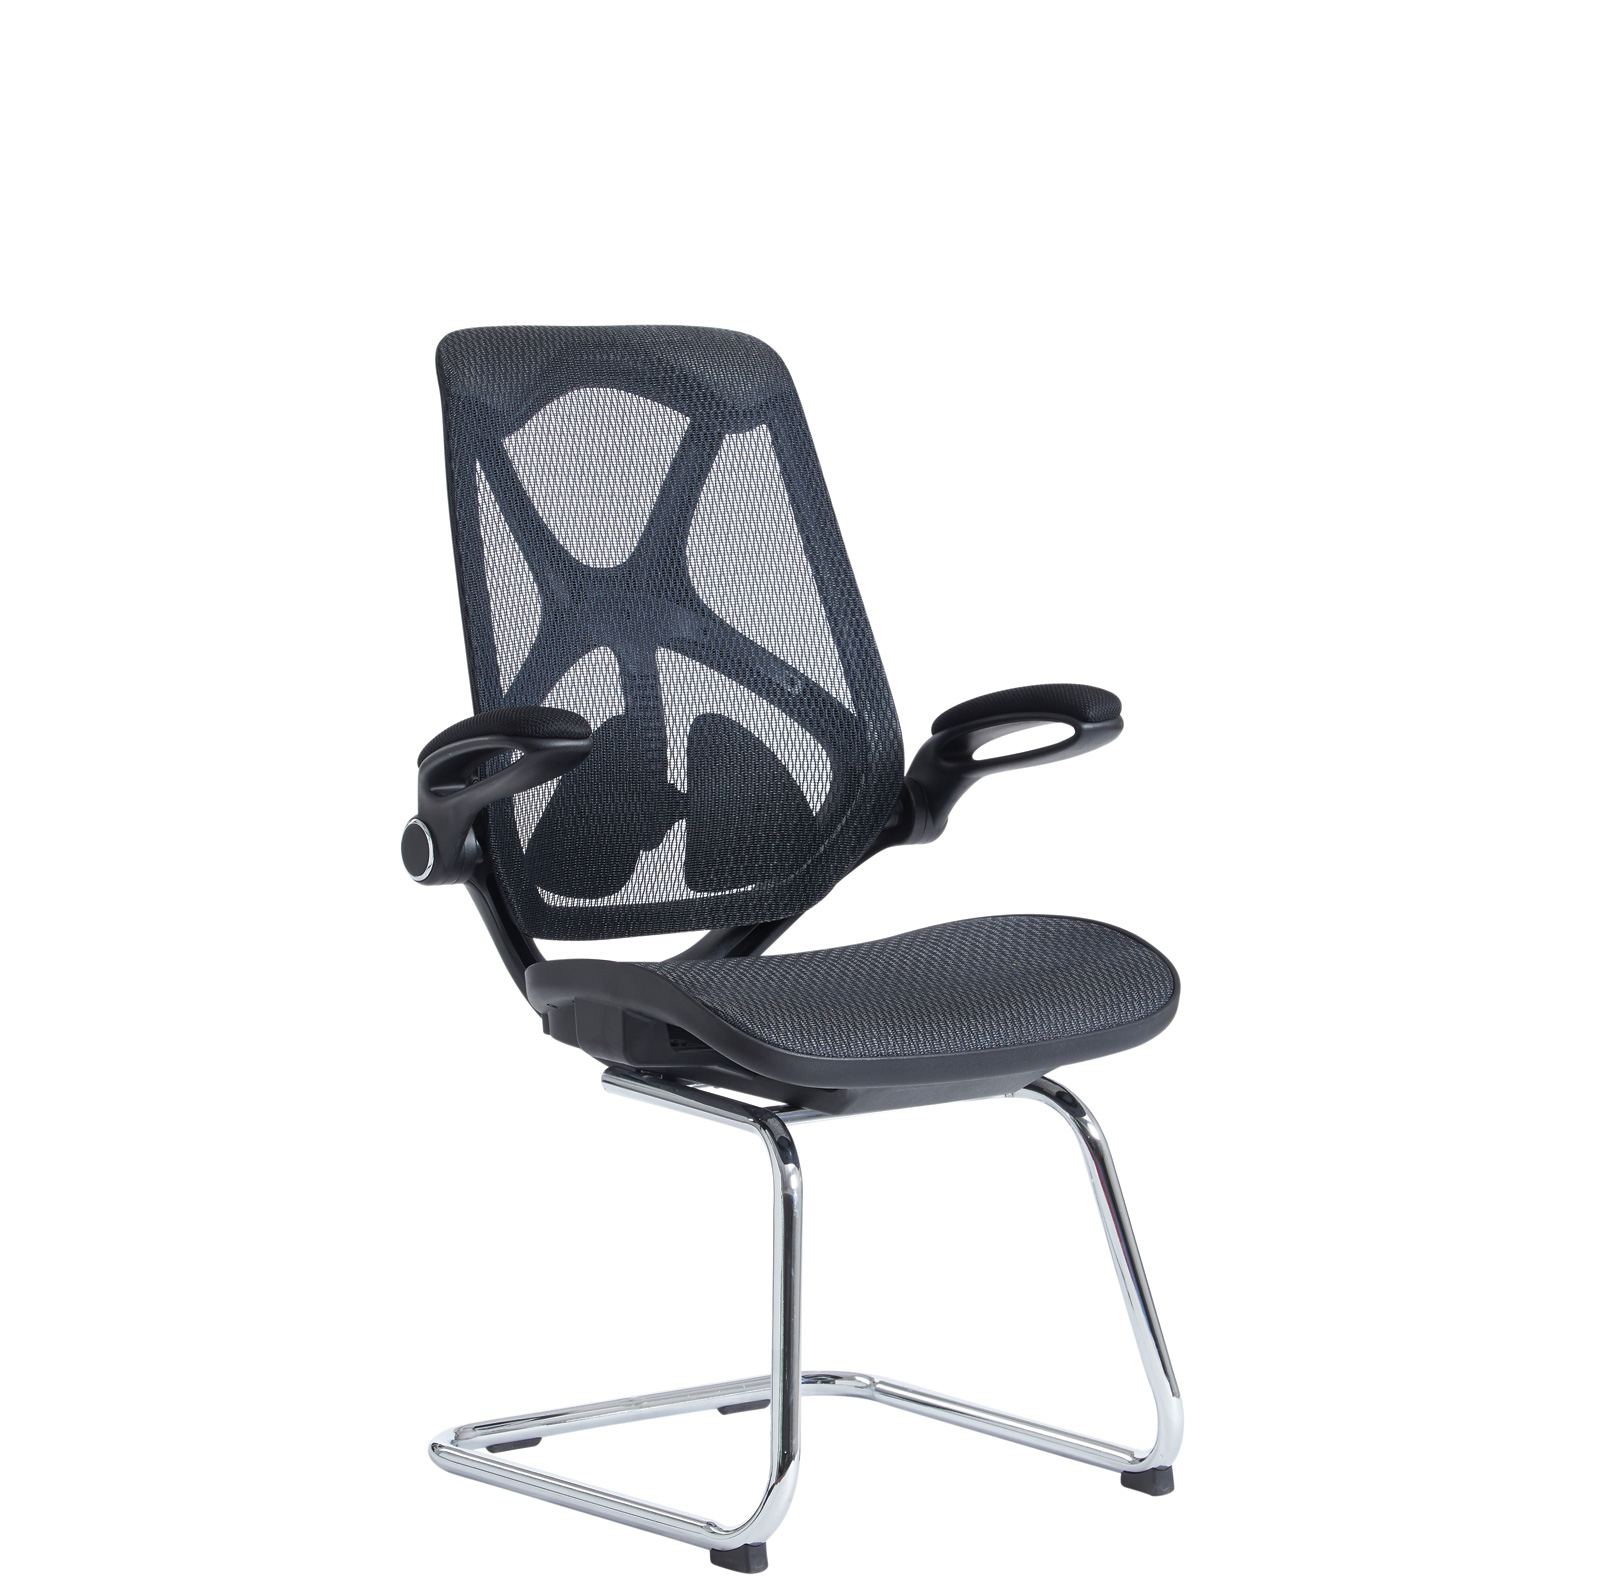 d8ec37ccd ... side panels to aid ventilation throughout the working day. The  waterfall seat and contoured back provide top ergonomic support, easing  stress at crucial ...